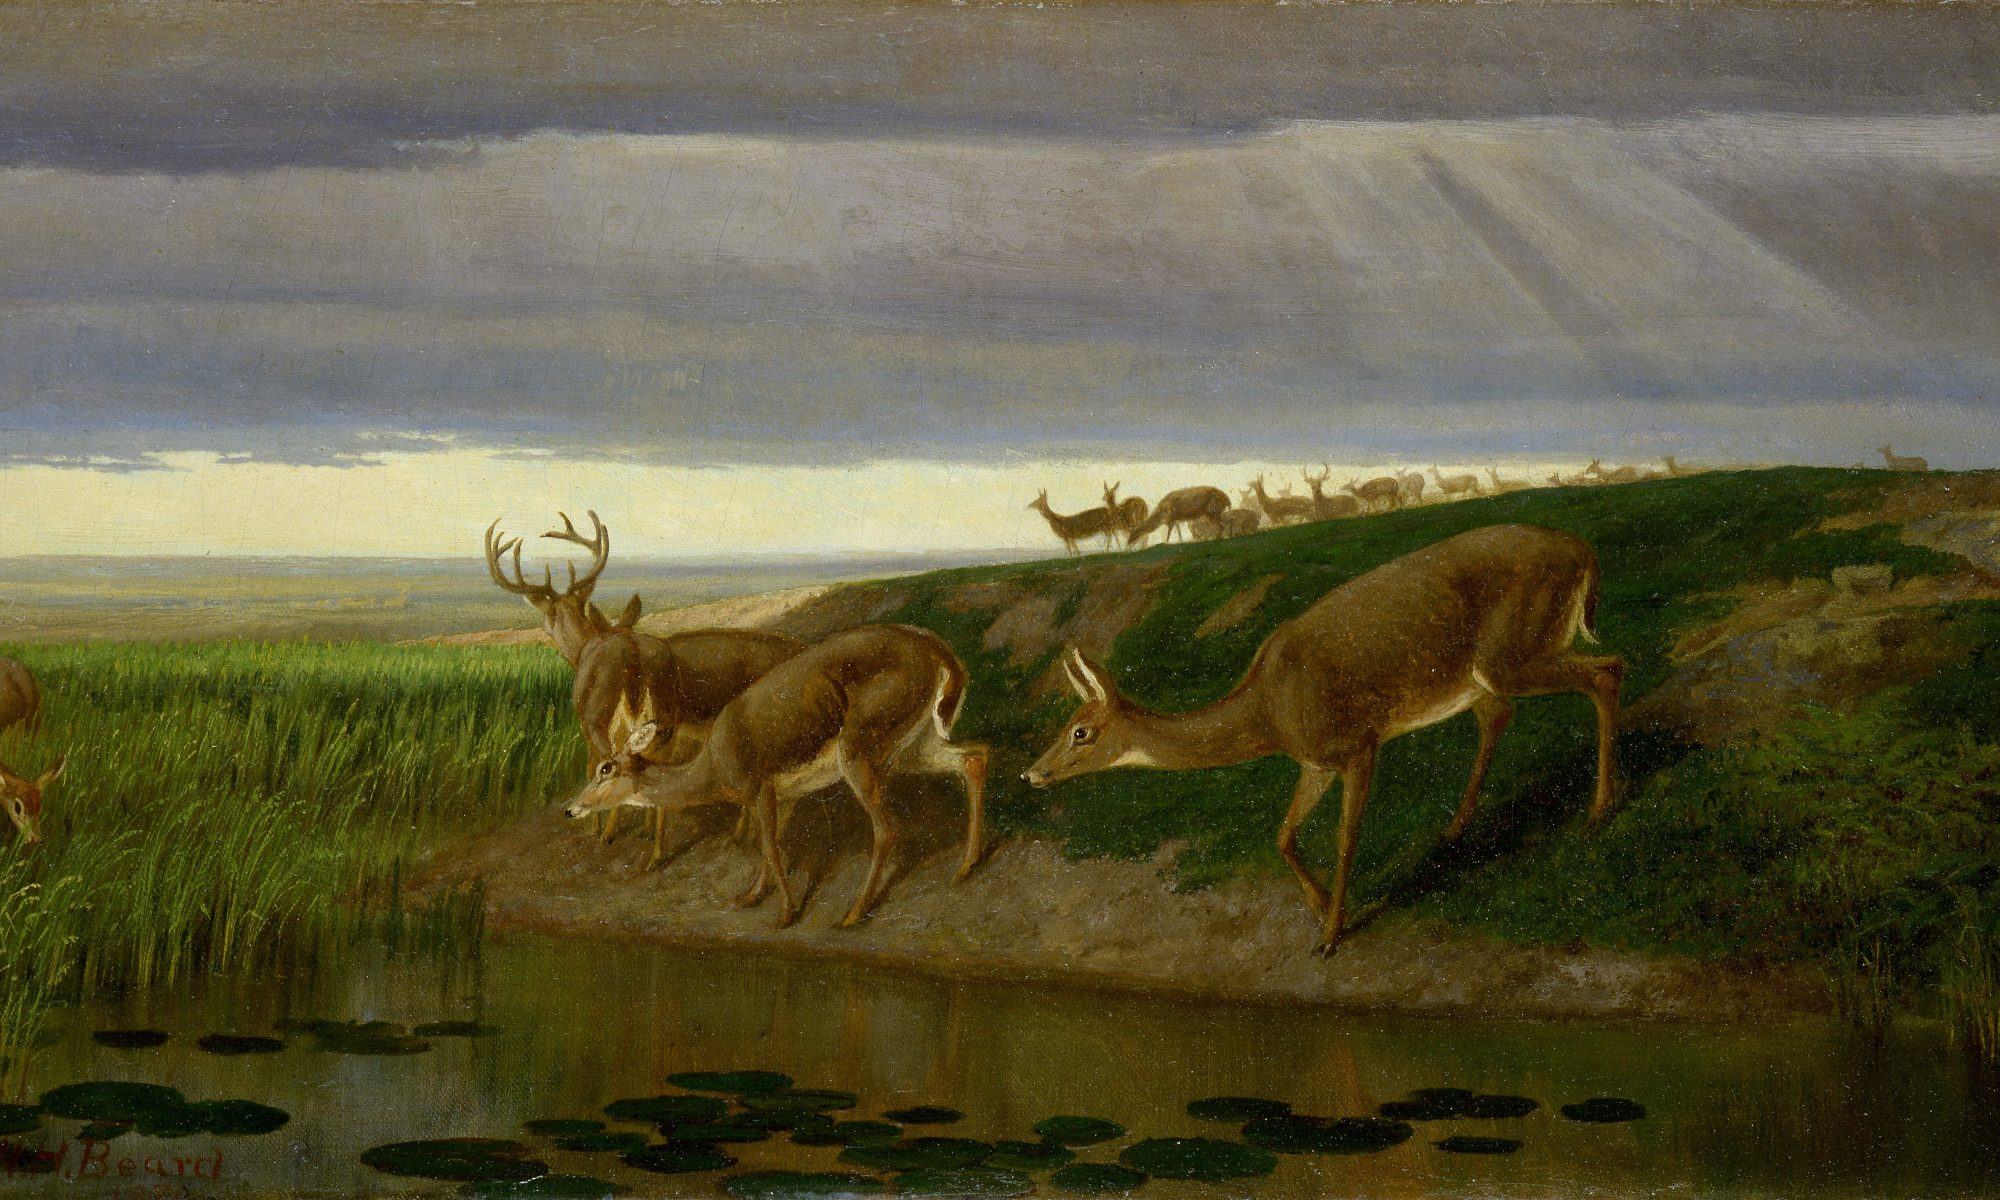 A painting of a group of elks